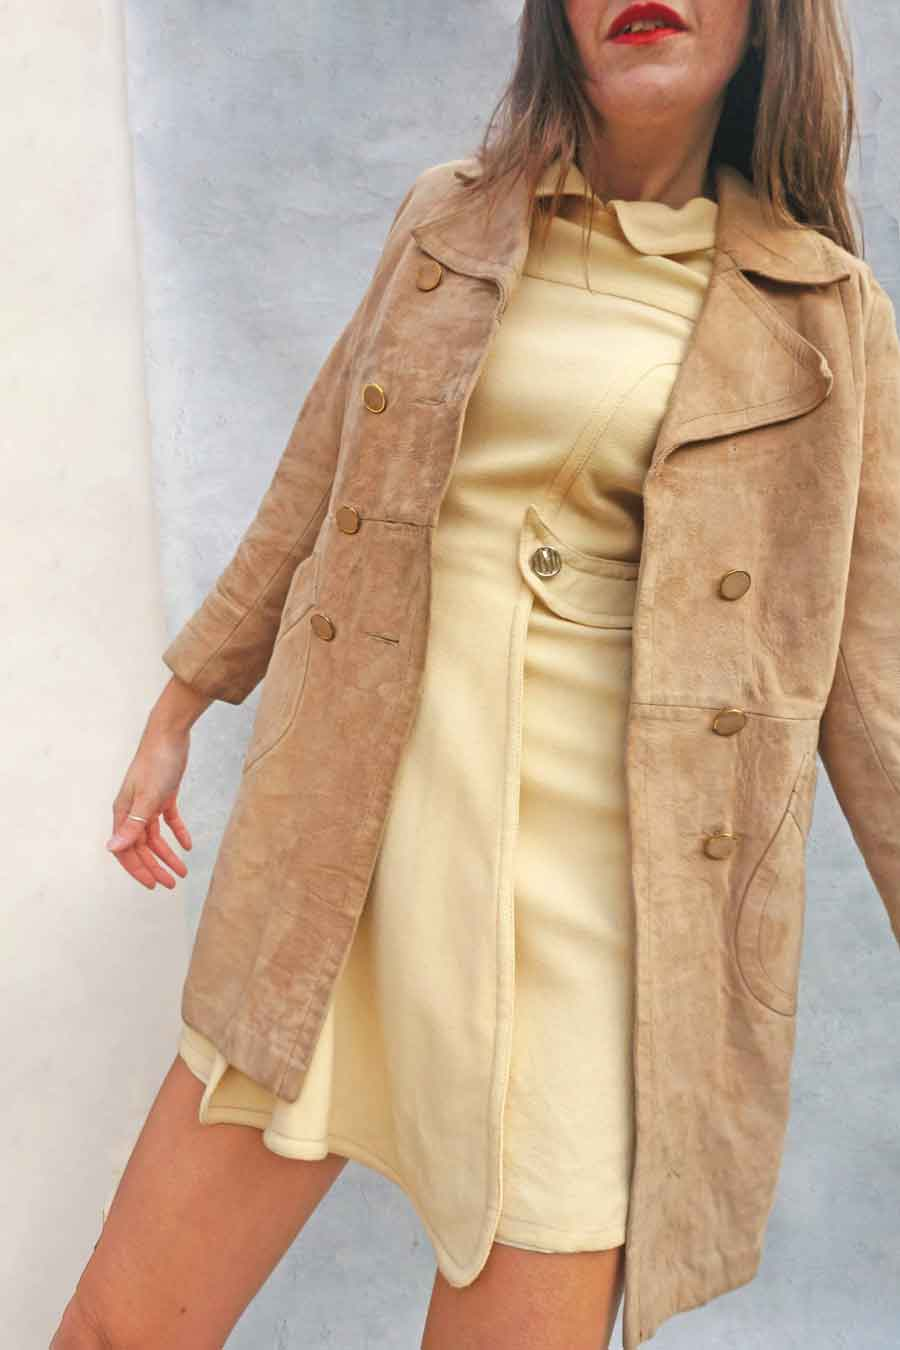 Vintage 60s Long Mod Beige Suede Leather Coat - Women's Suede Coat - Ada's Attic Vintage